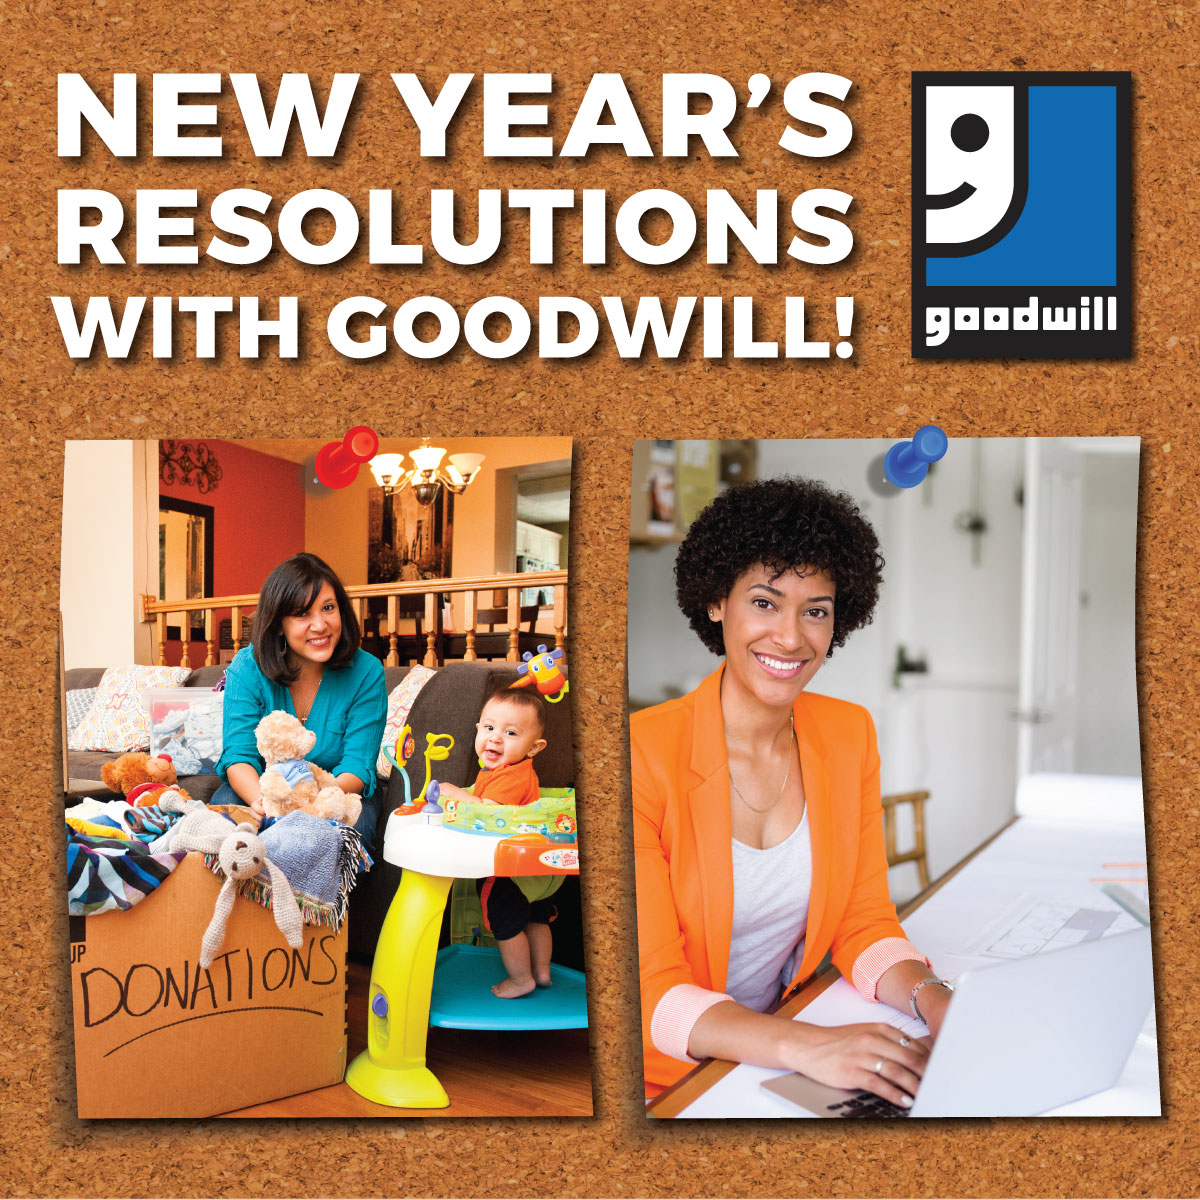 New Year's Resolutions with Goodwill